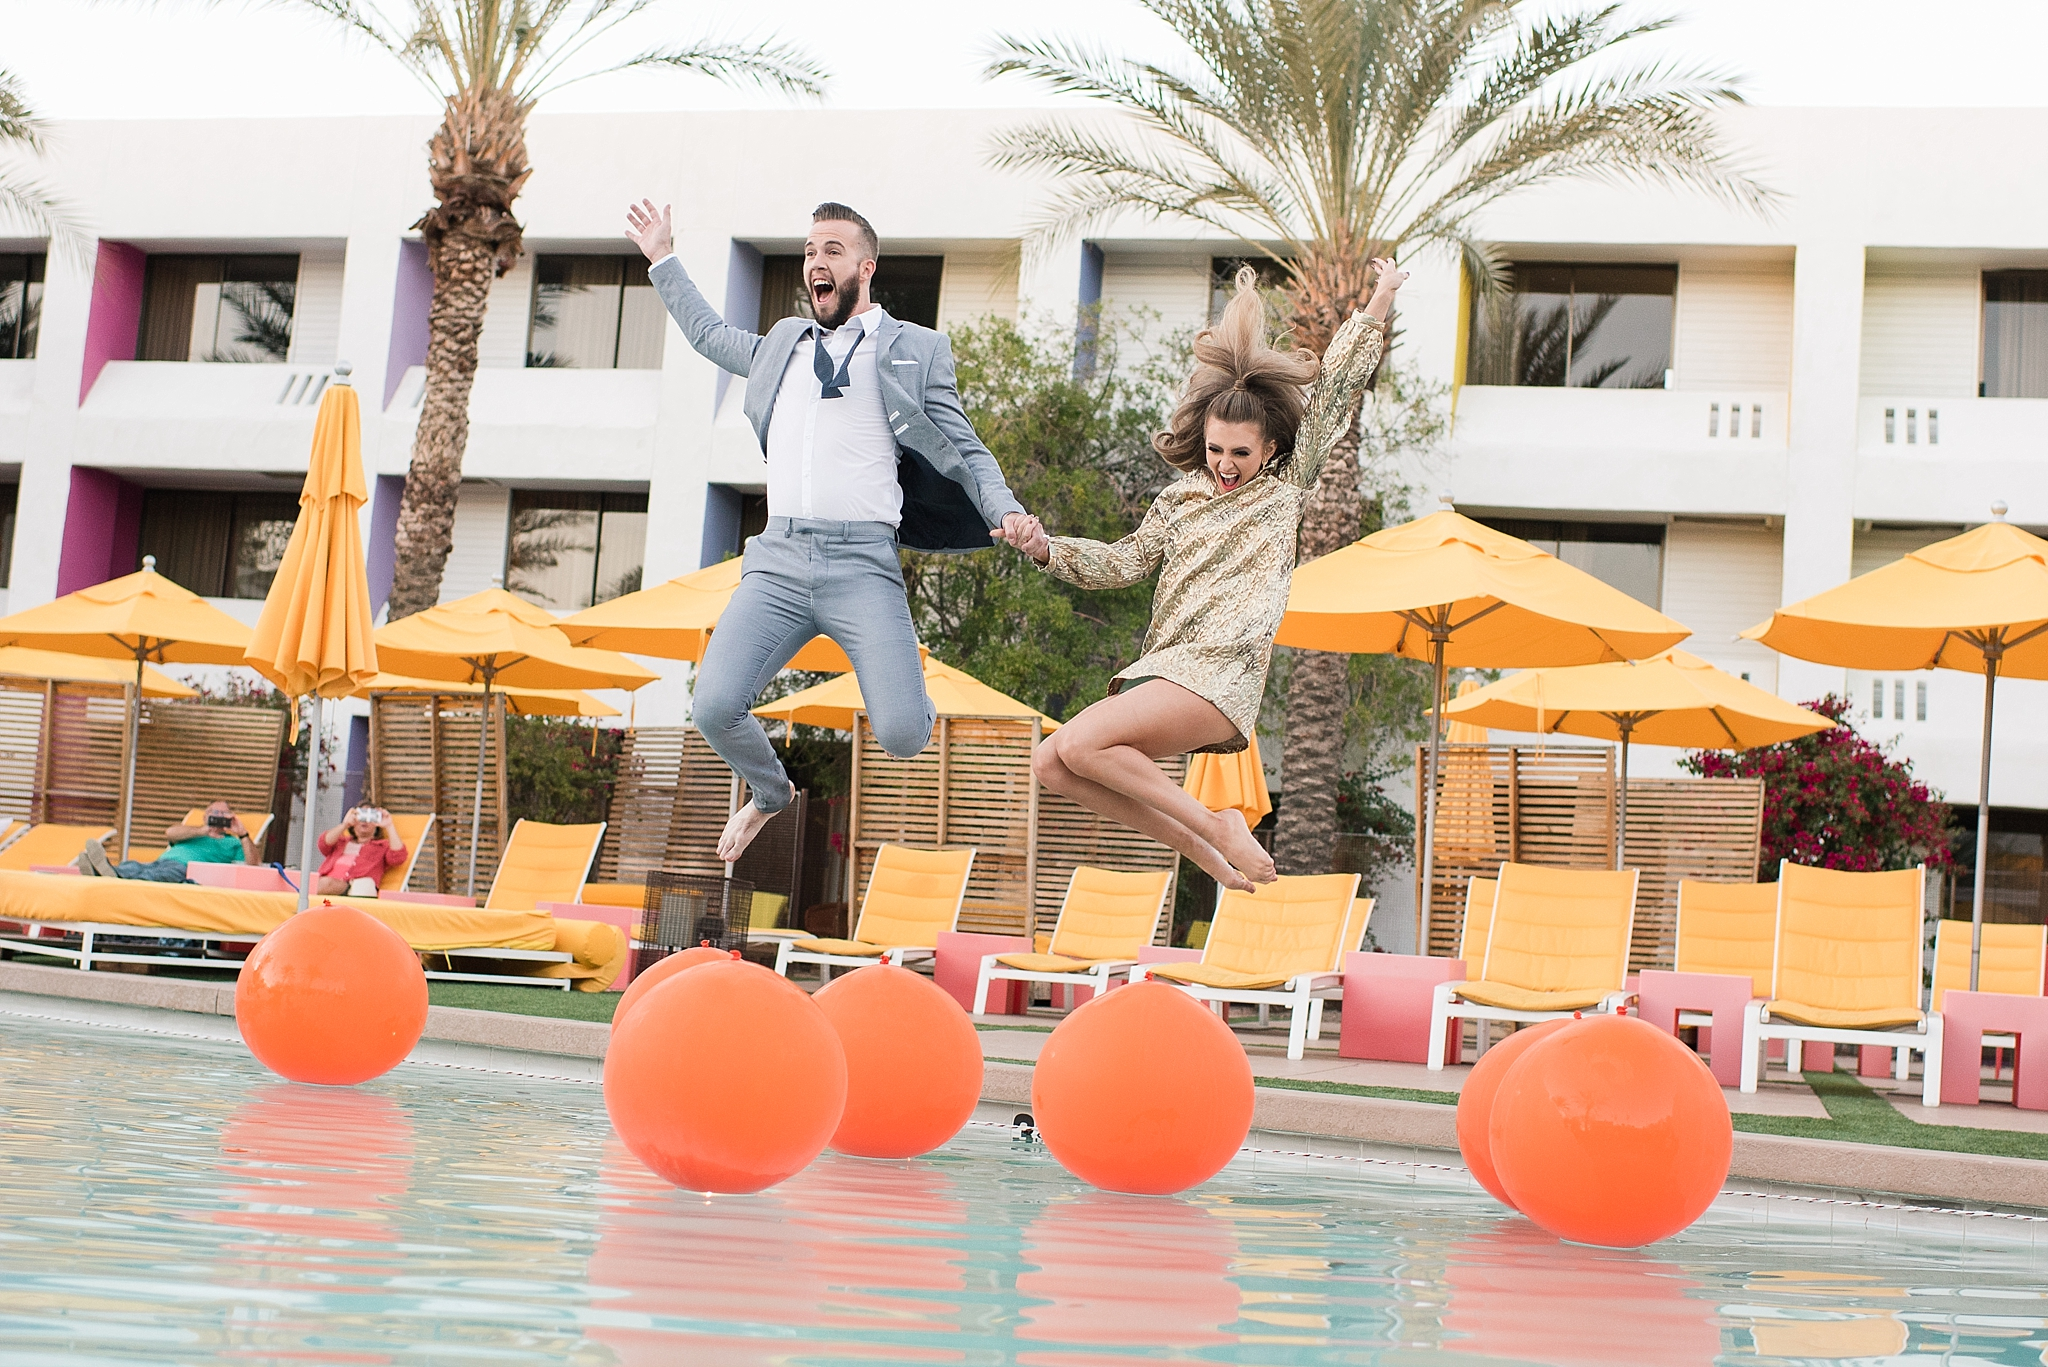 Bride Natalie Meyer jumping into The Saguaro Scottsdale's pool with her groom Zach Meyer. Hair and makeup was done by Makiaj Beauty. Groom's suit provided by Magro Clothing. Photos by Jade Min Photography.